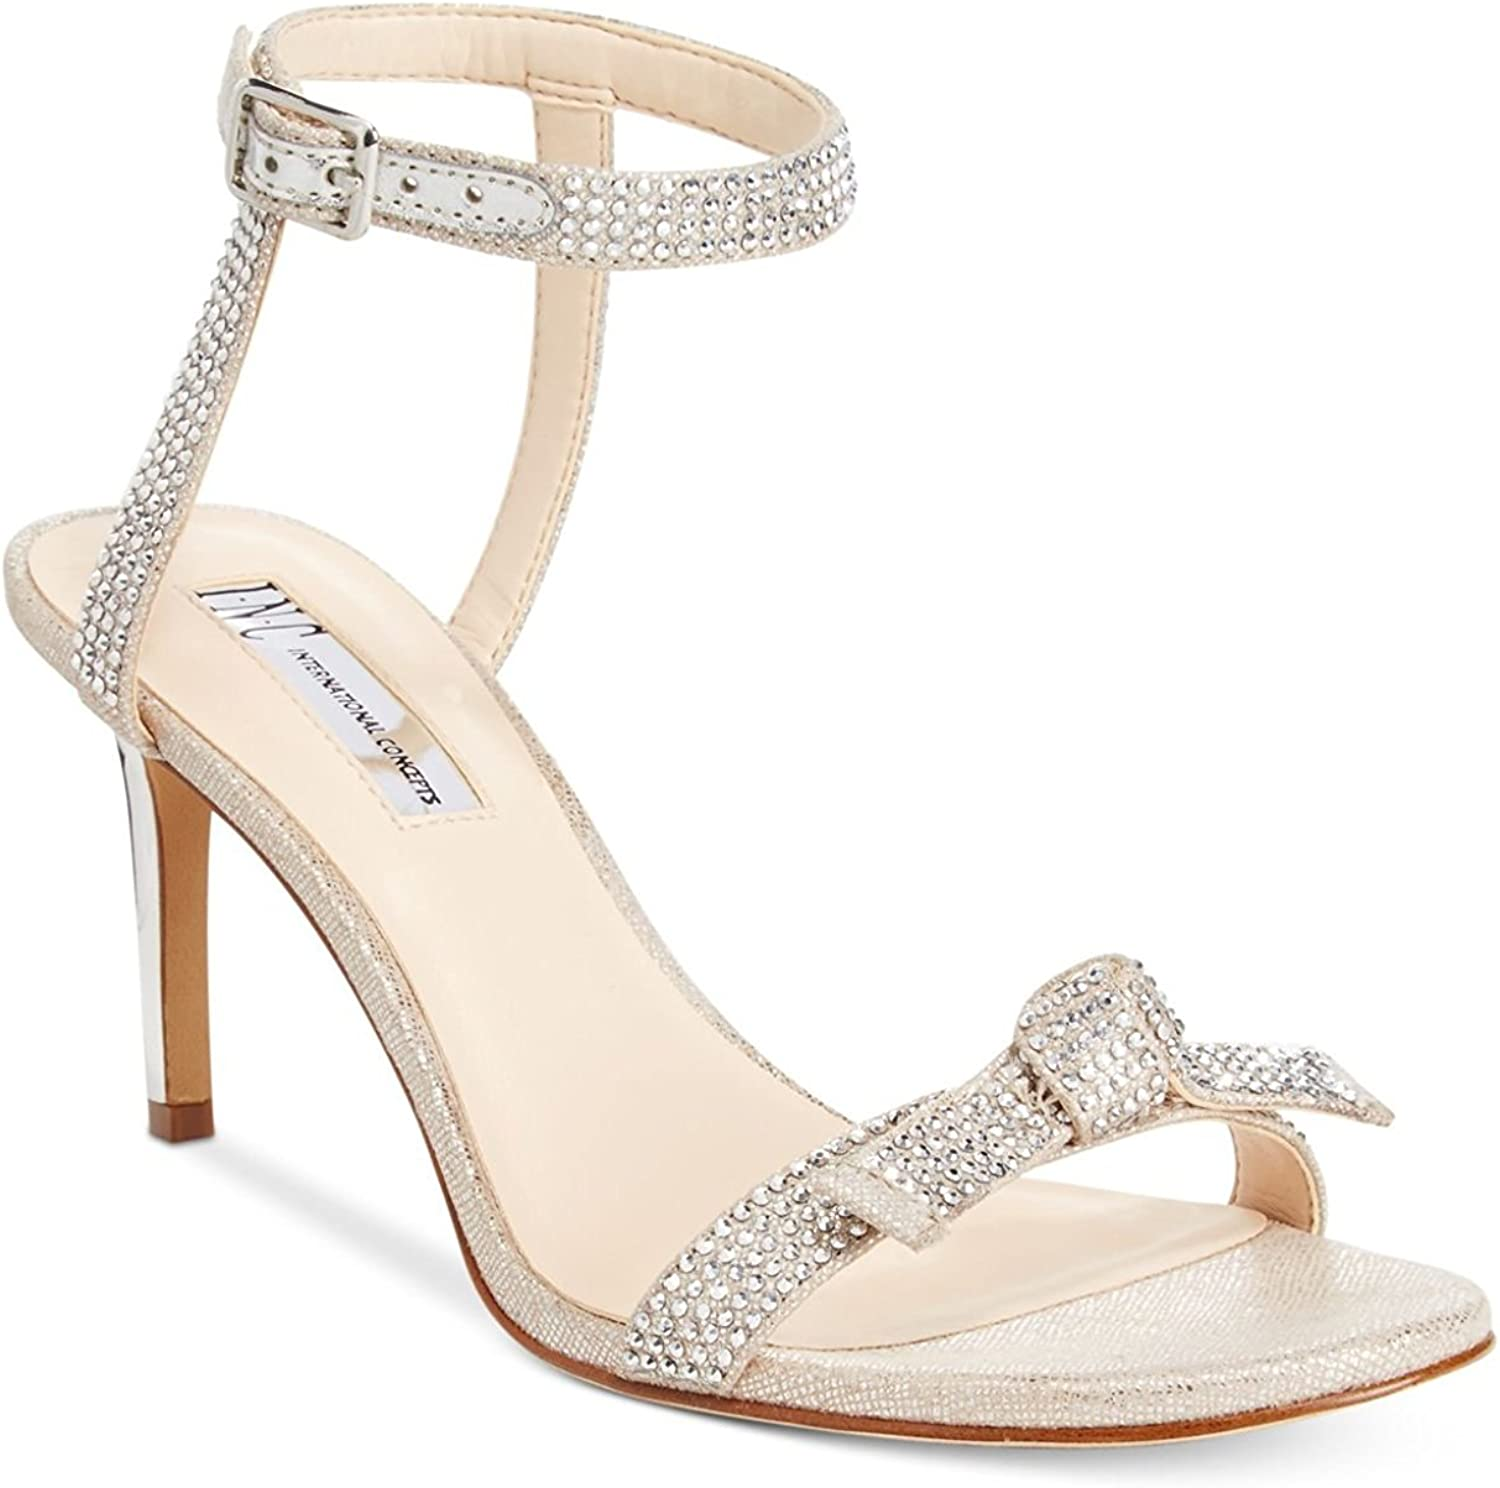 I35 Laniah Ankle Strap Evening Sandals, Nude, Nude, Nude, 5 USA  fritid